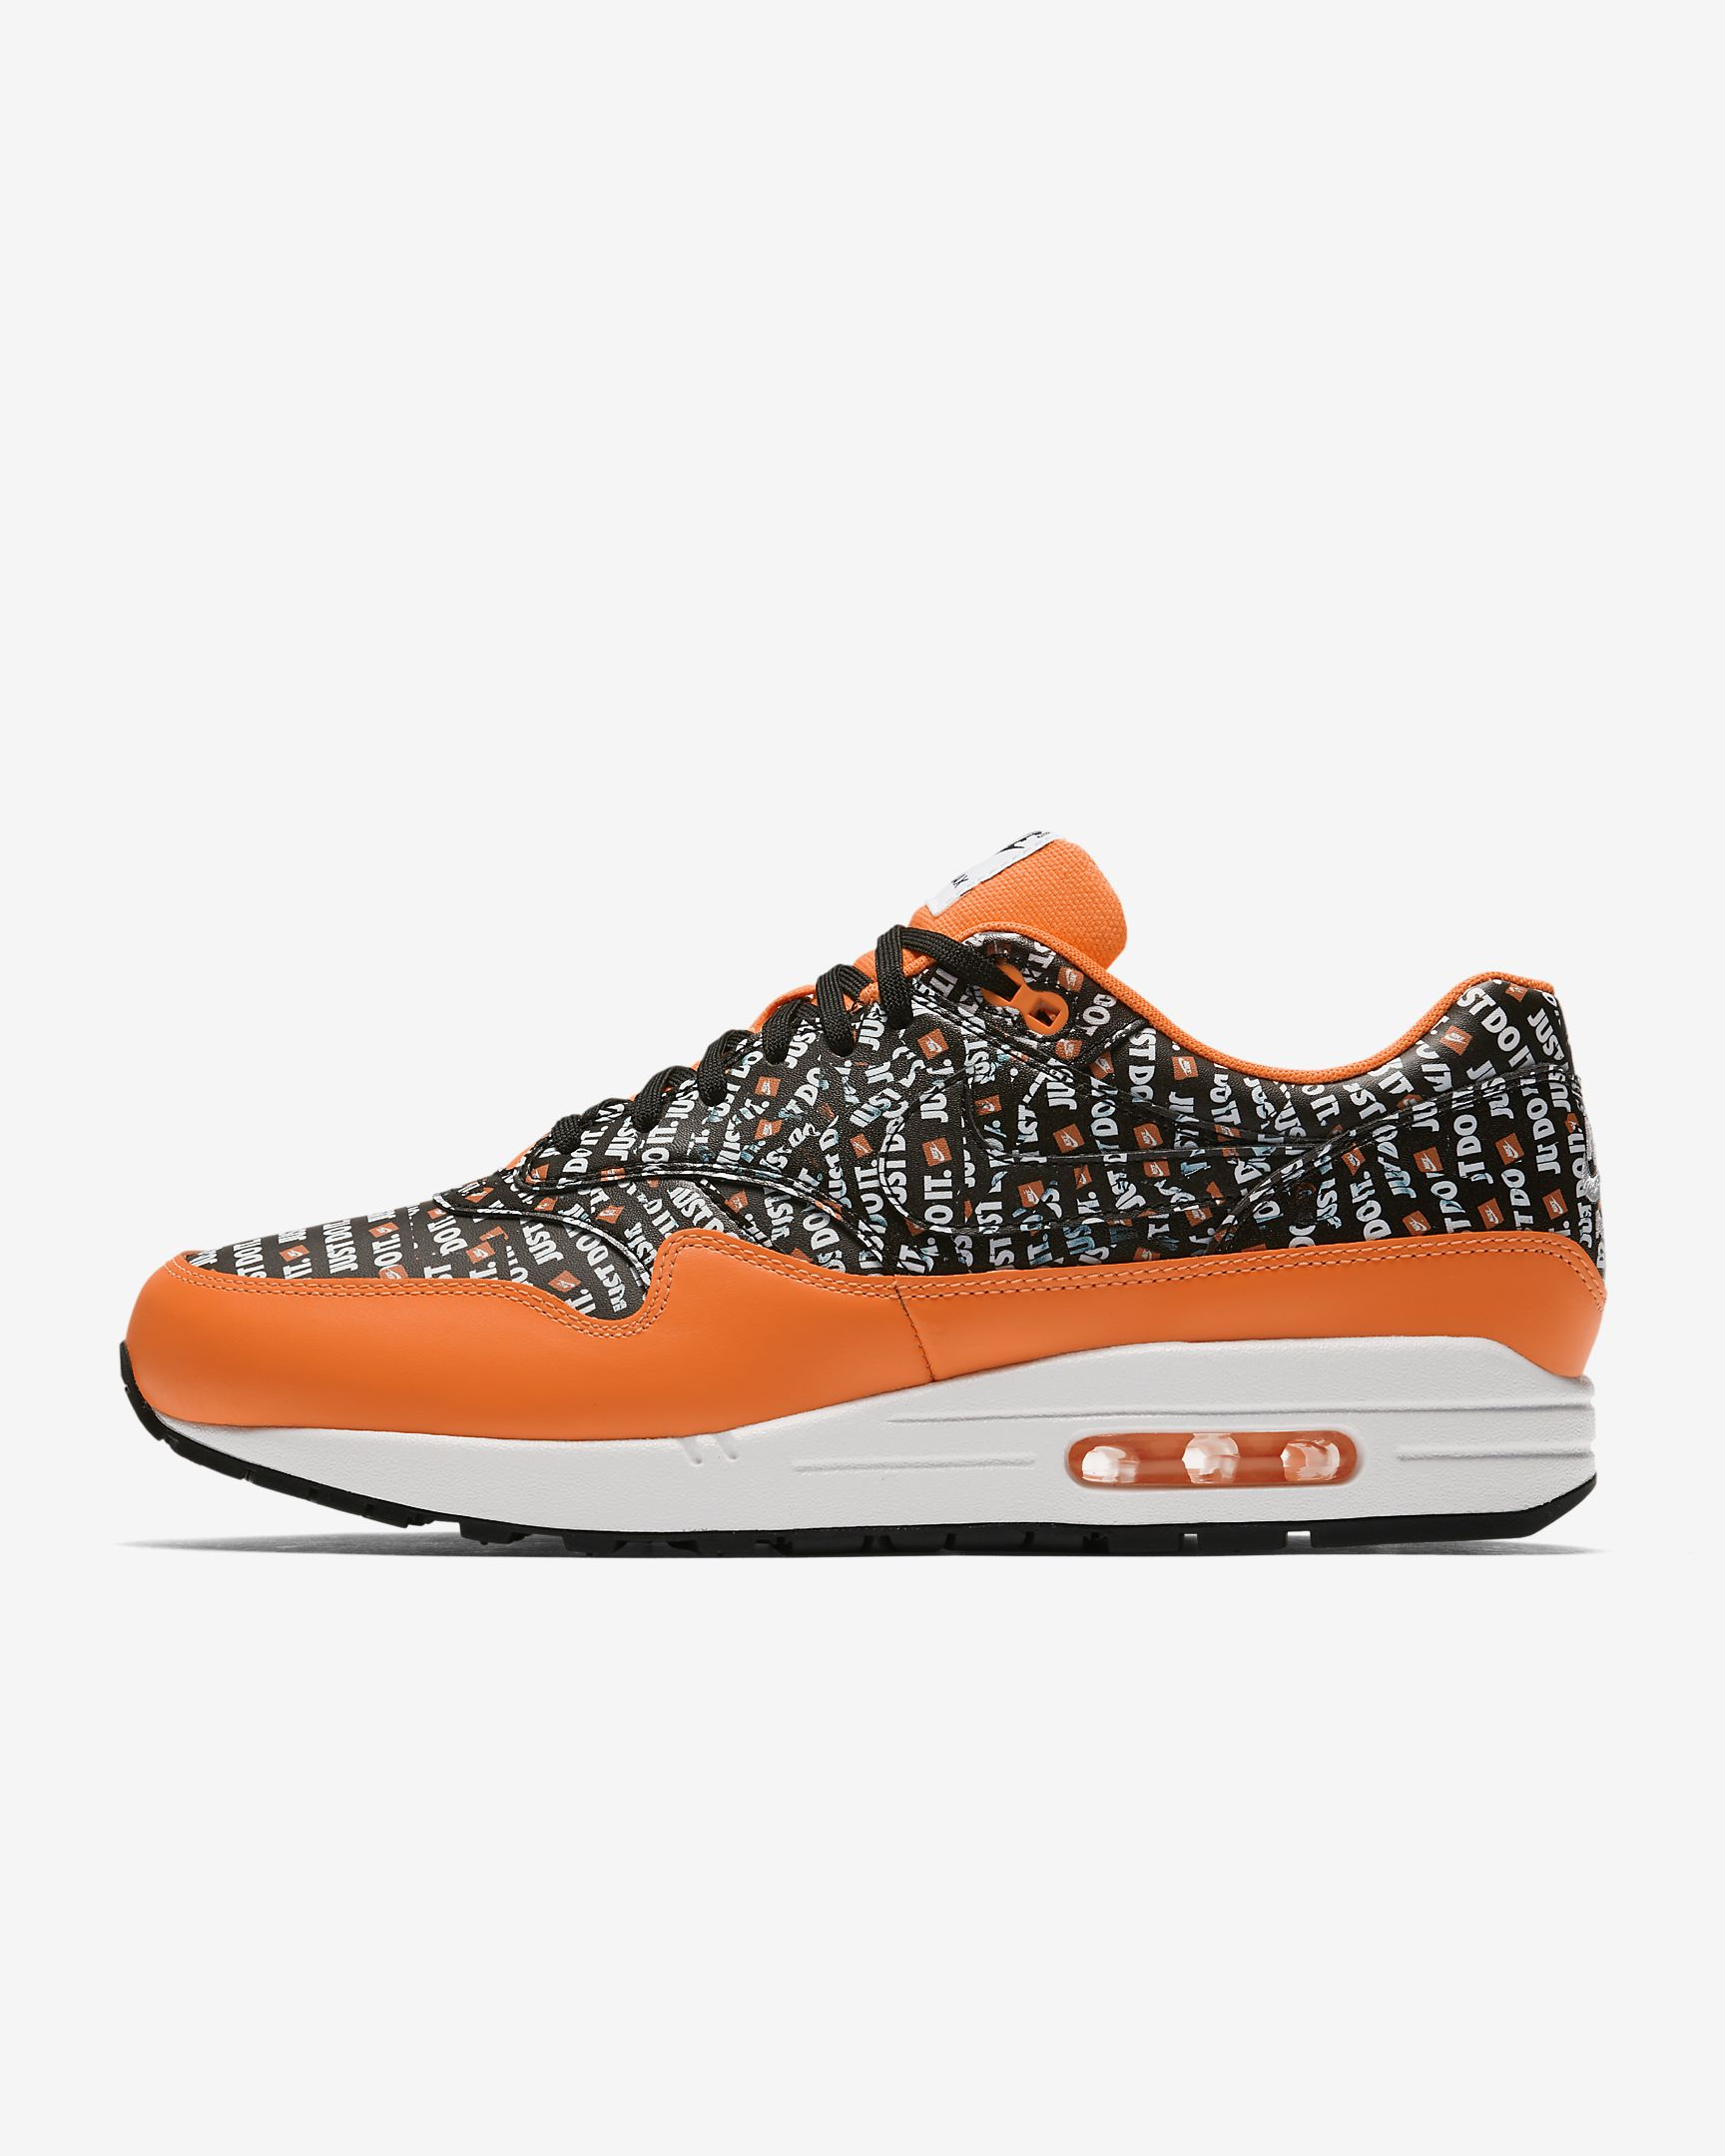 384739e8f7 Nike Air Max 1 Premium | Just do it